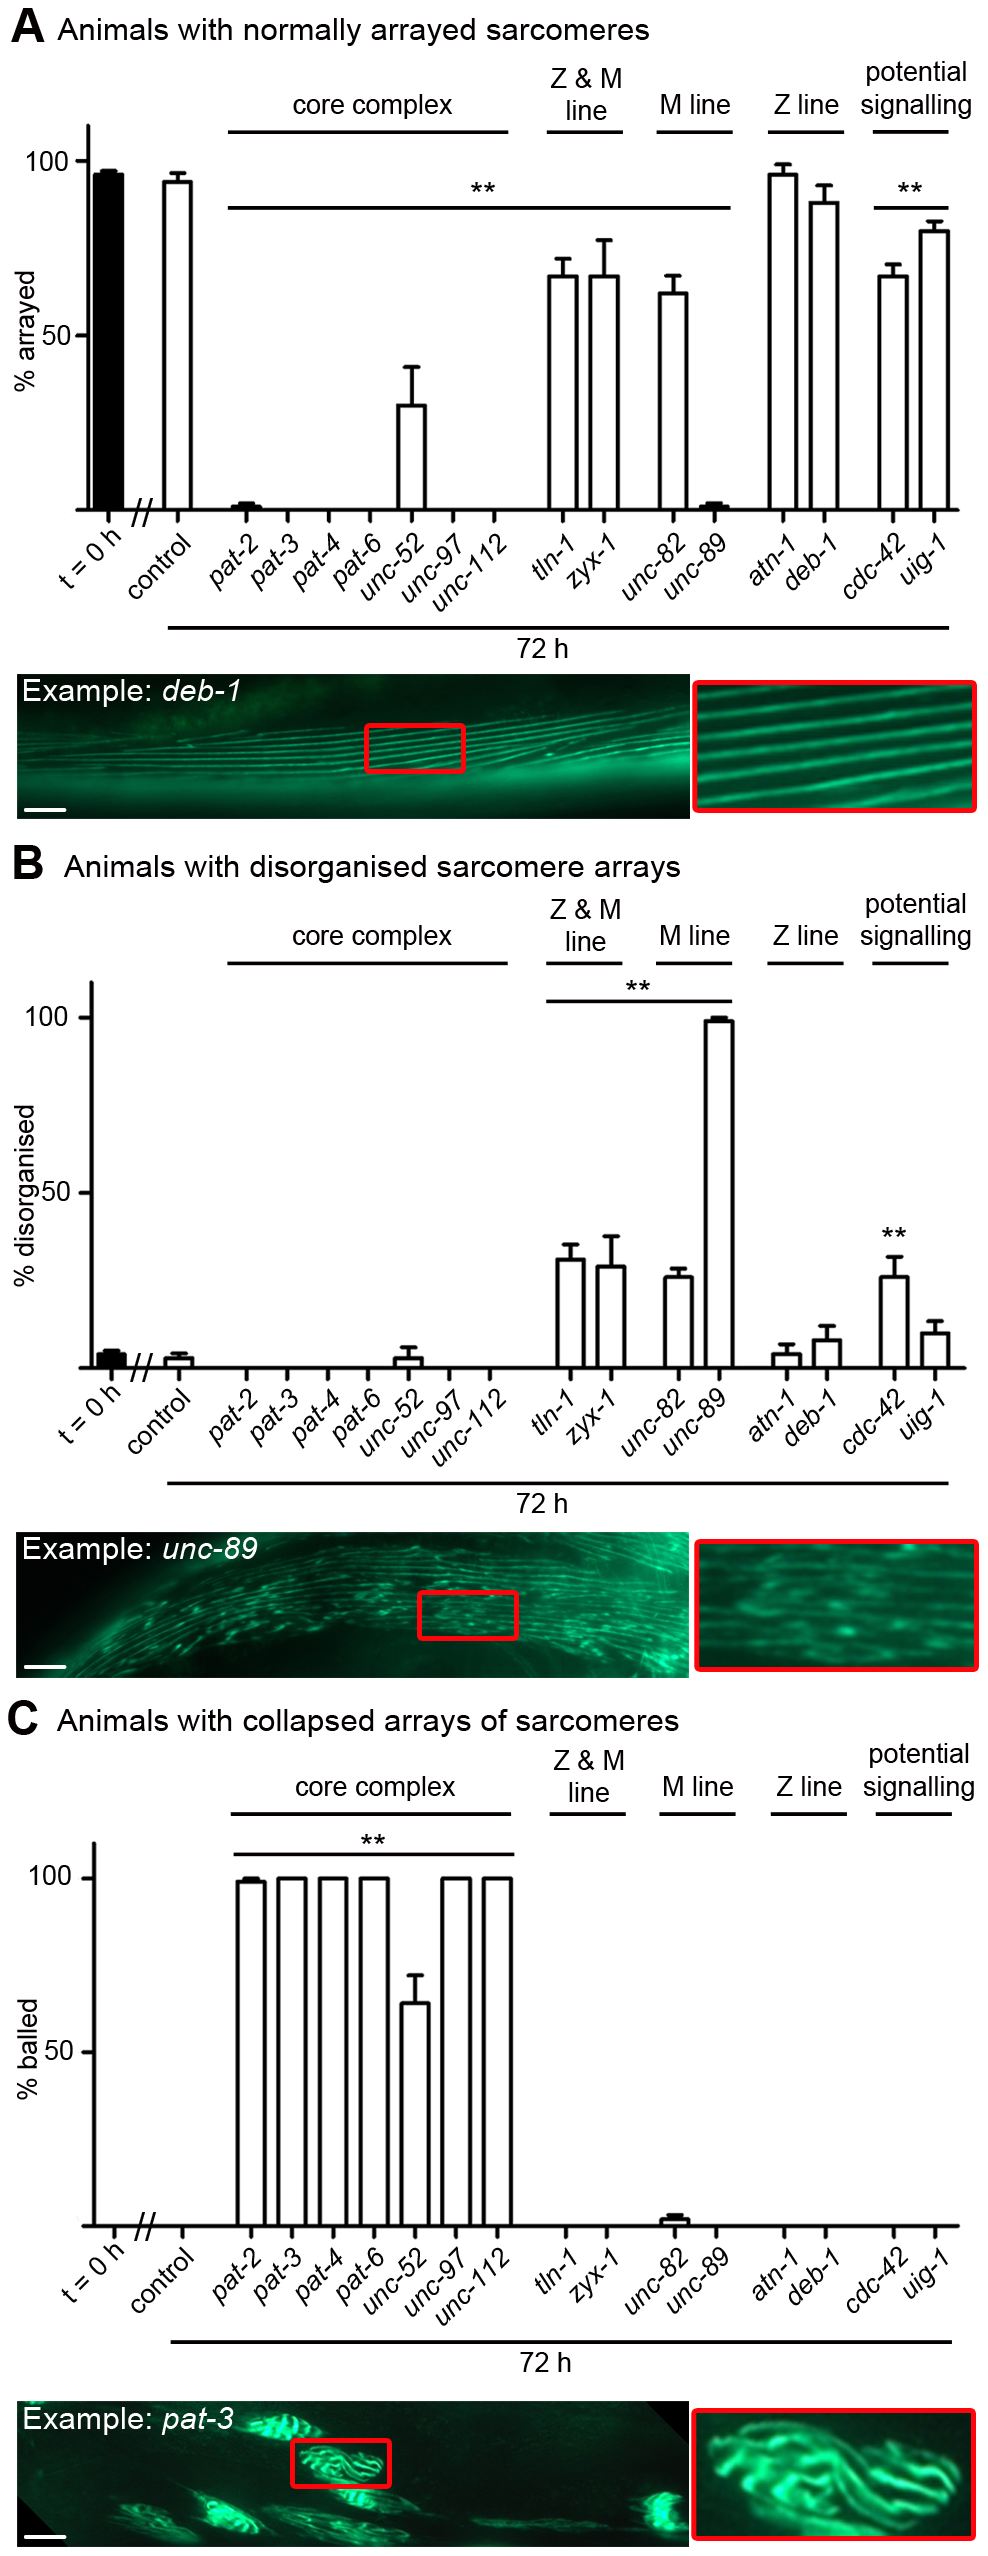 Acute loss of muscle attachment causes disorganisation and collapse of arrayed sarcomeres.